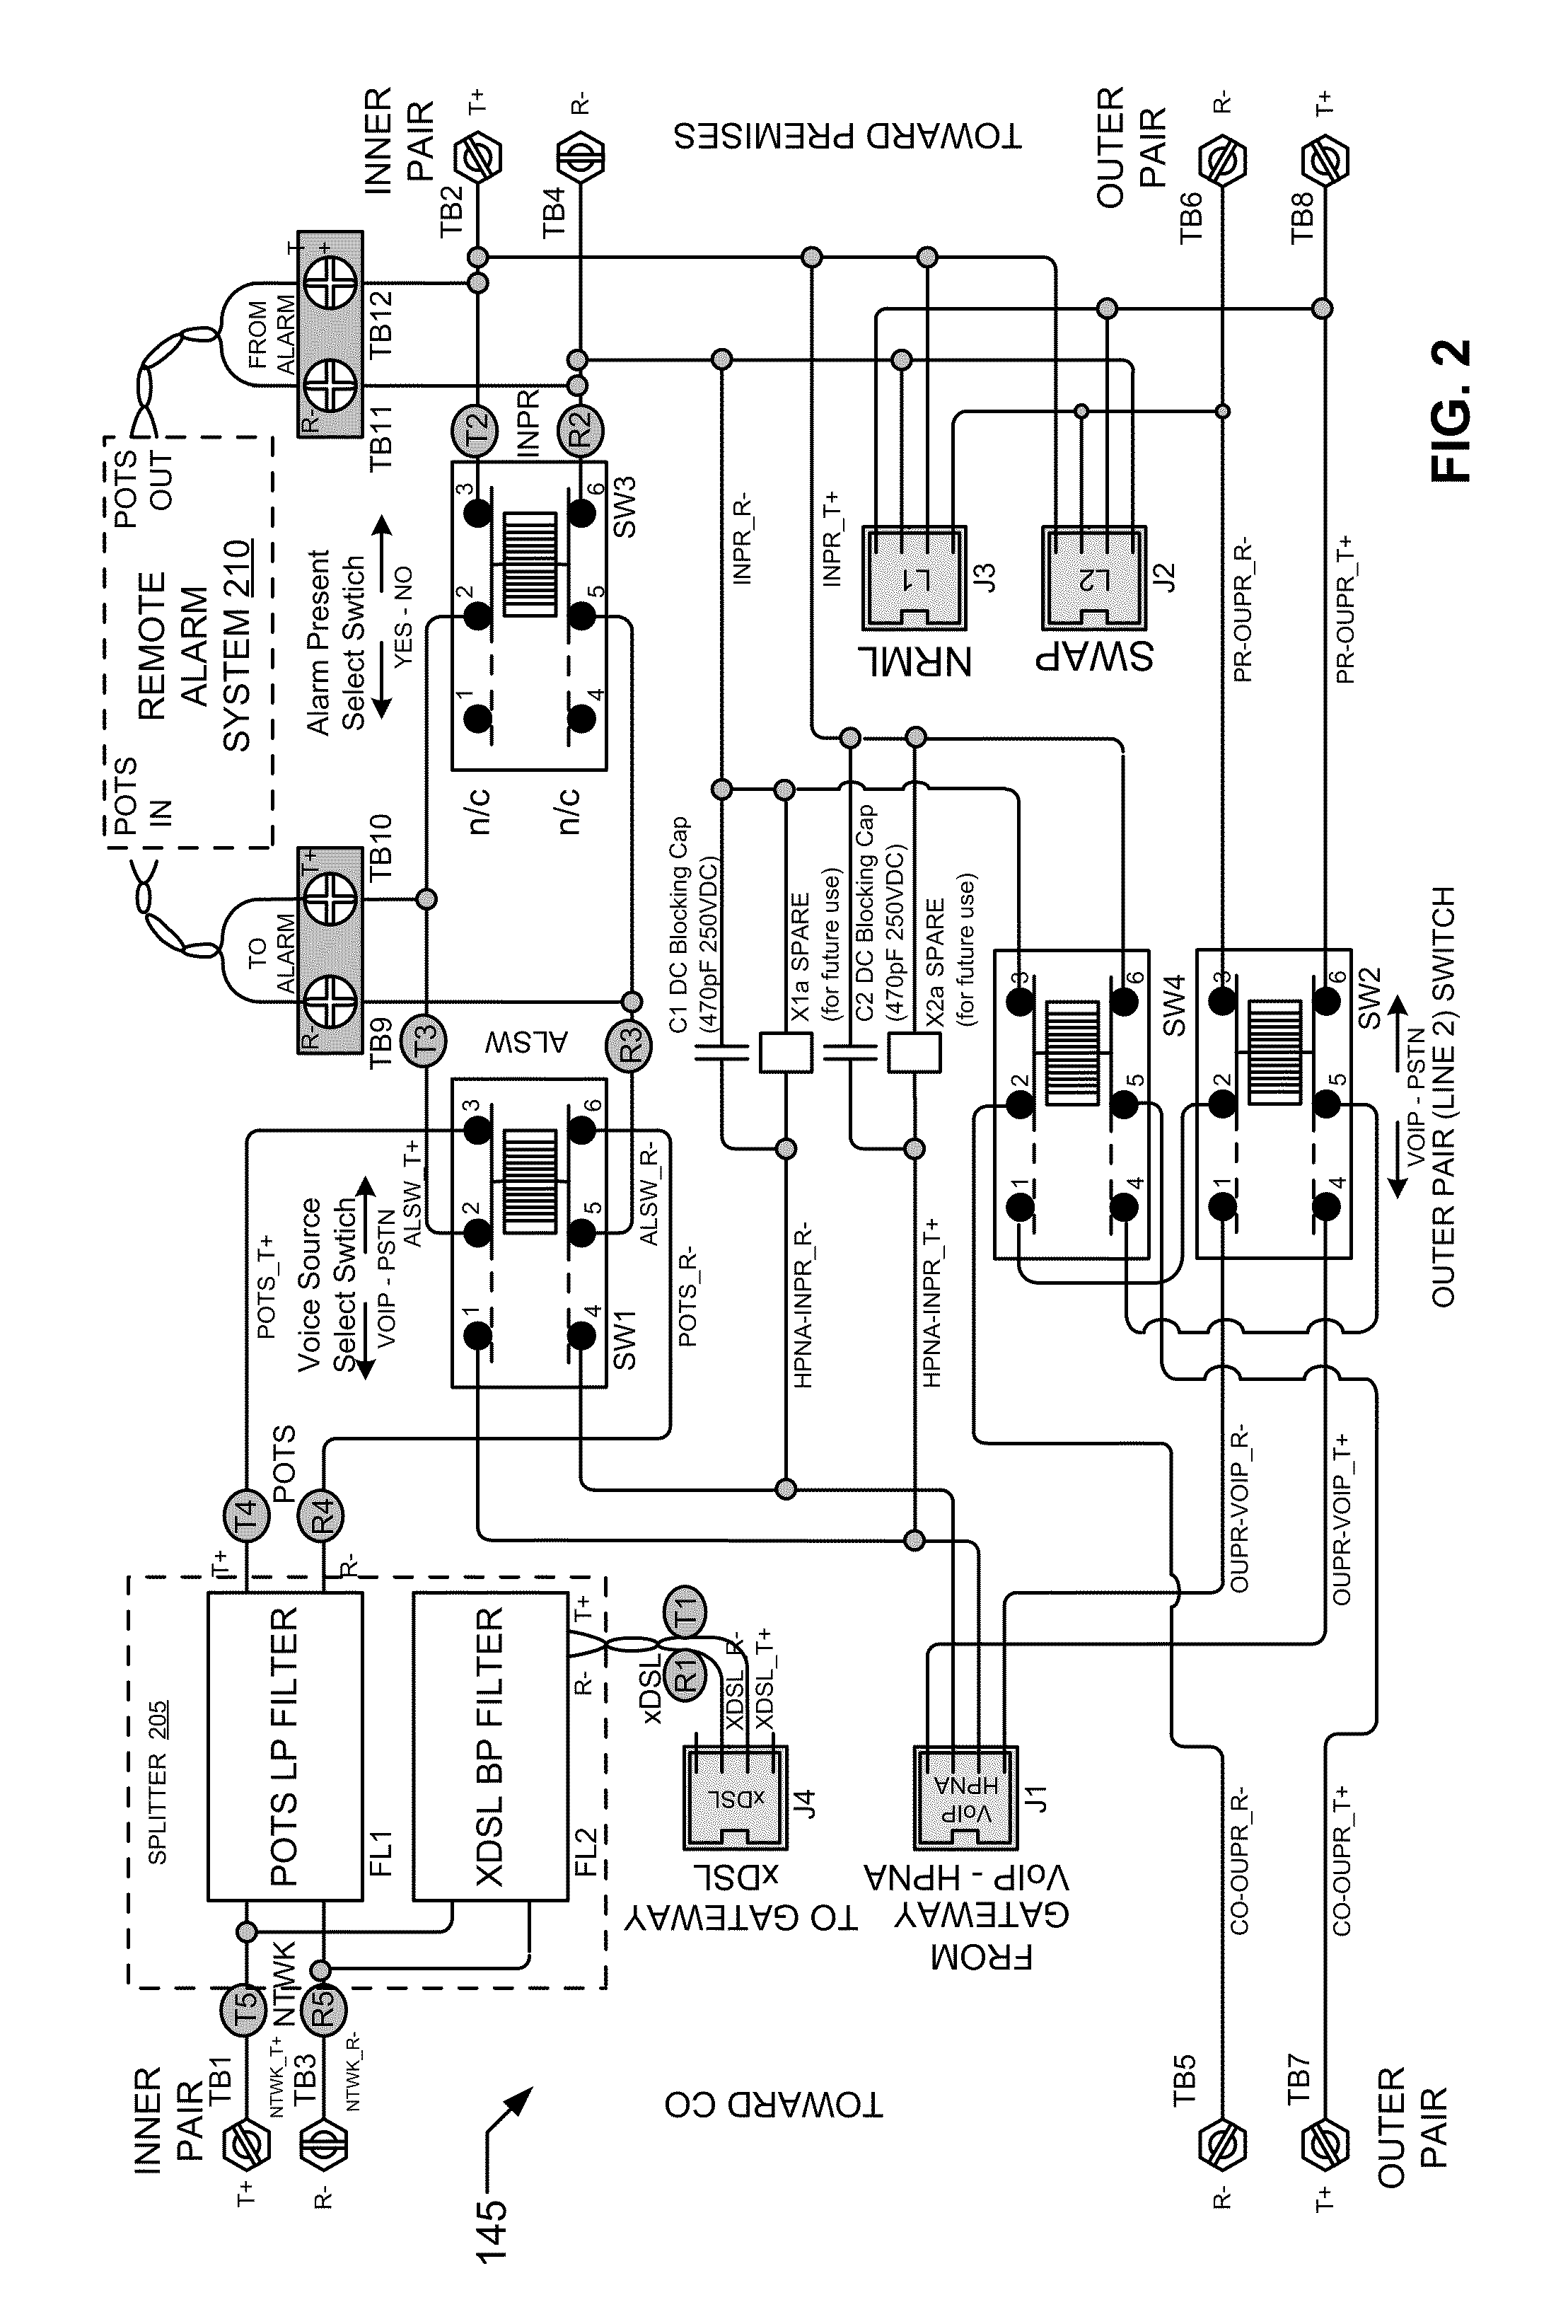 plain old telephone service diagram